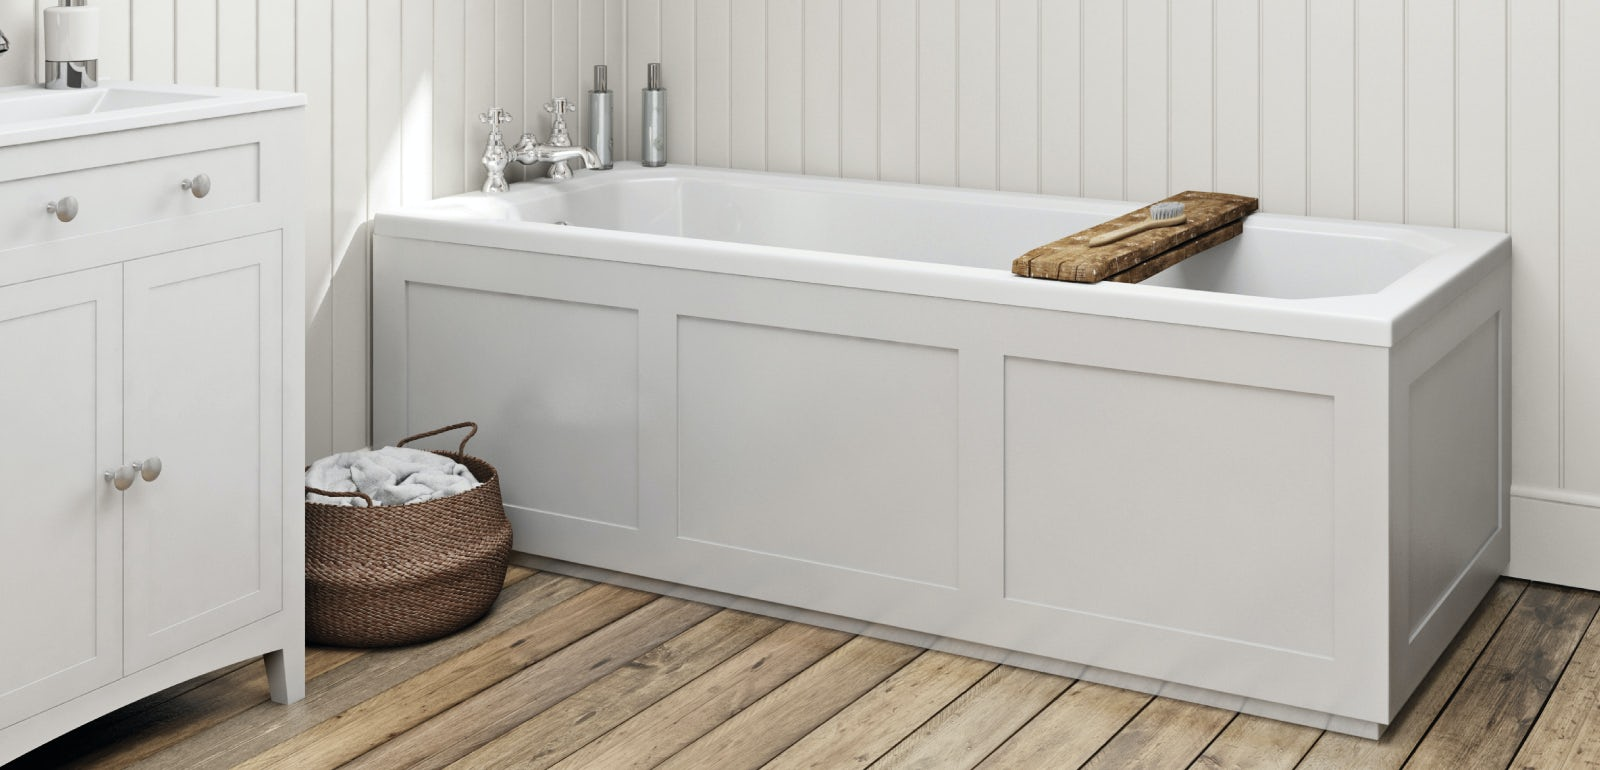 How to fit a wooden bath panel in 9 easy steps